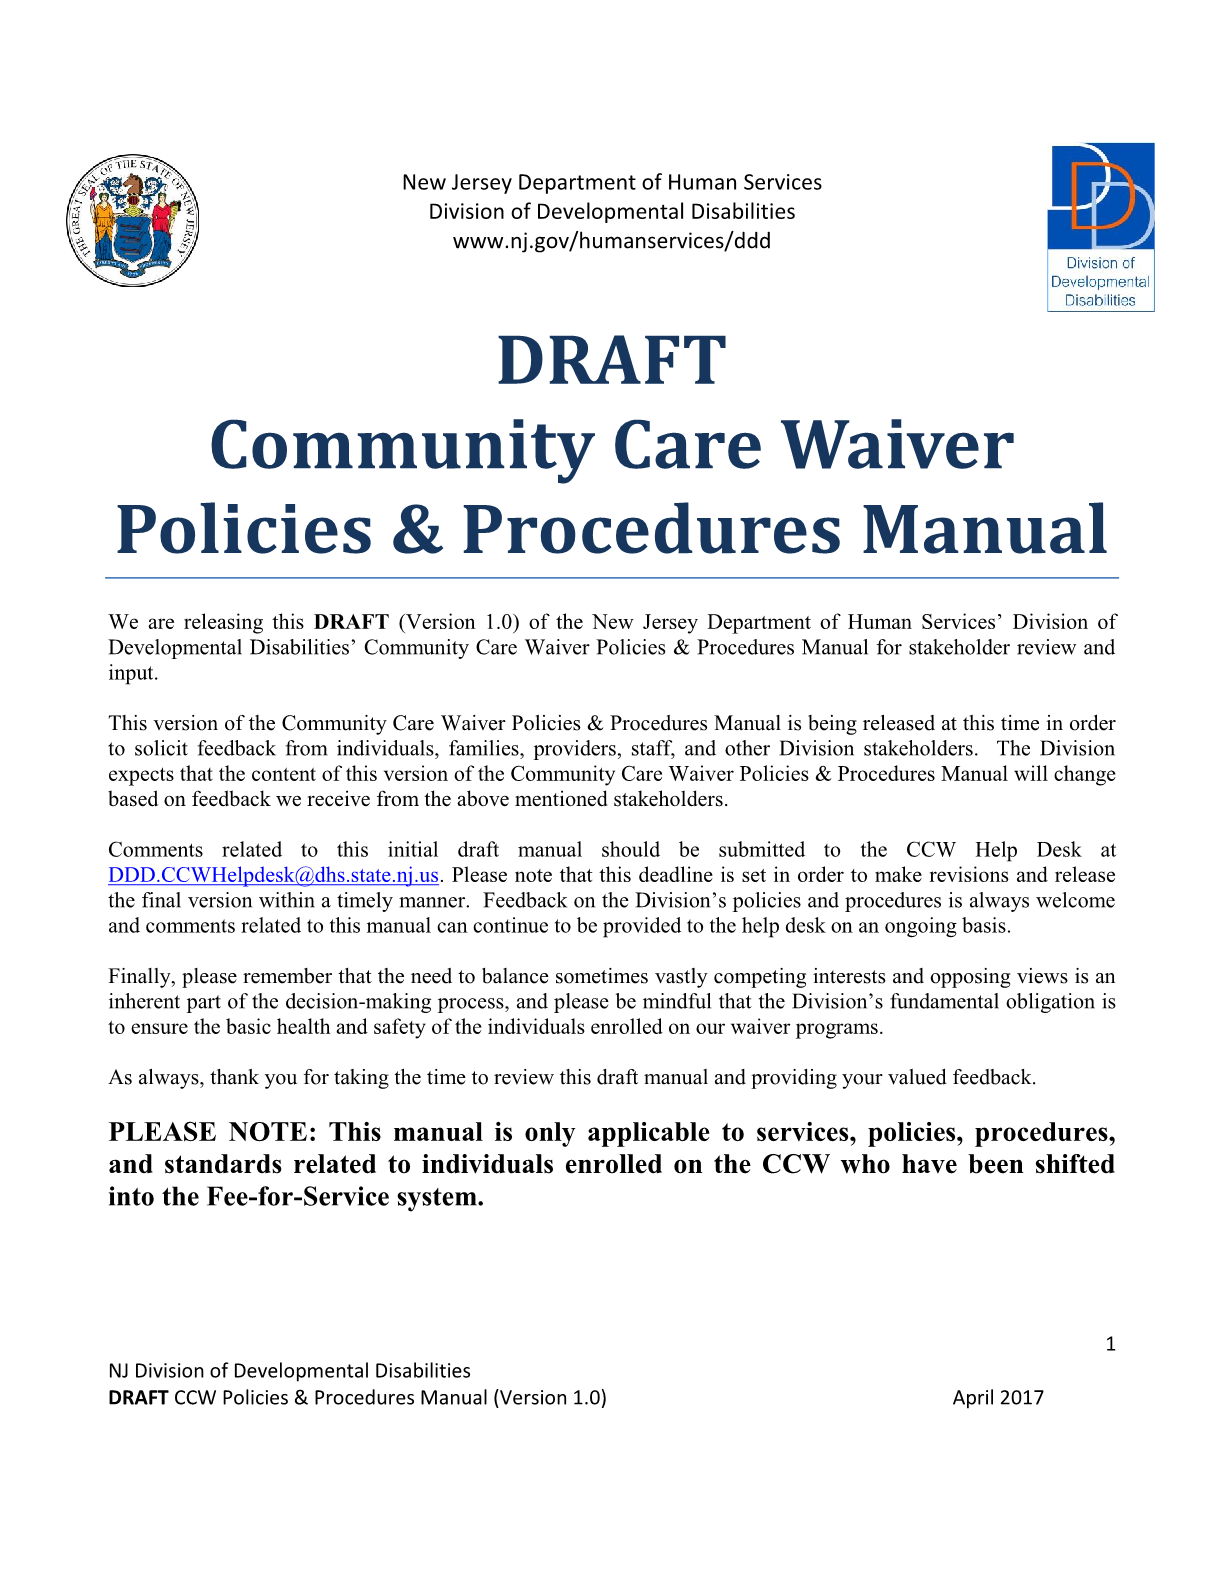 Community Care Program Policies & Procedures Manual